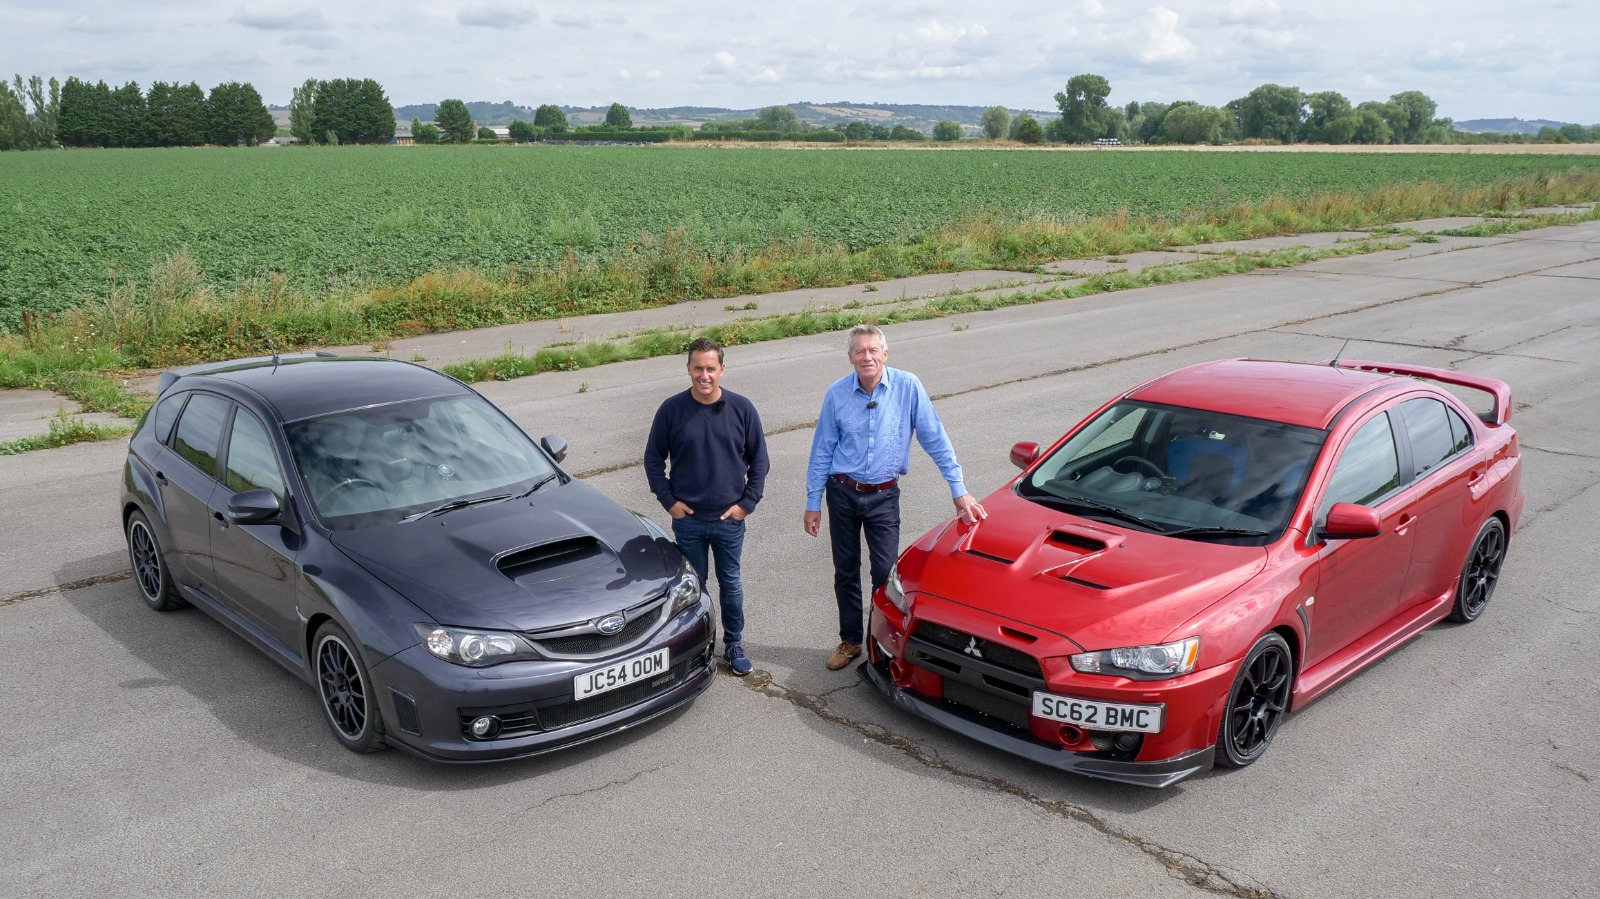 Ultimate AWD Face Off with the Subaru Impreza WRX STI Cosworth CS400 and Mitsubishi Lancer EVO X FQ400